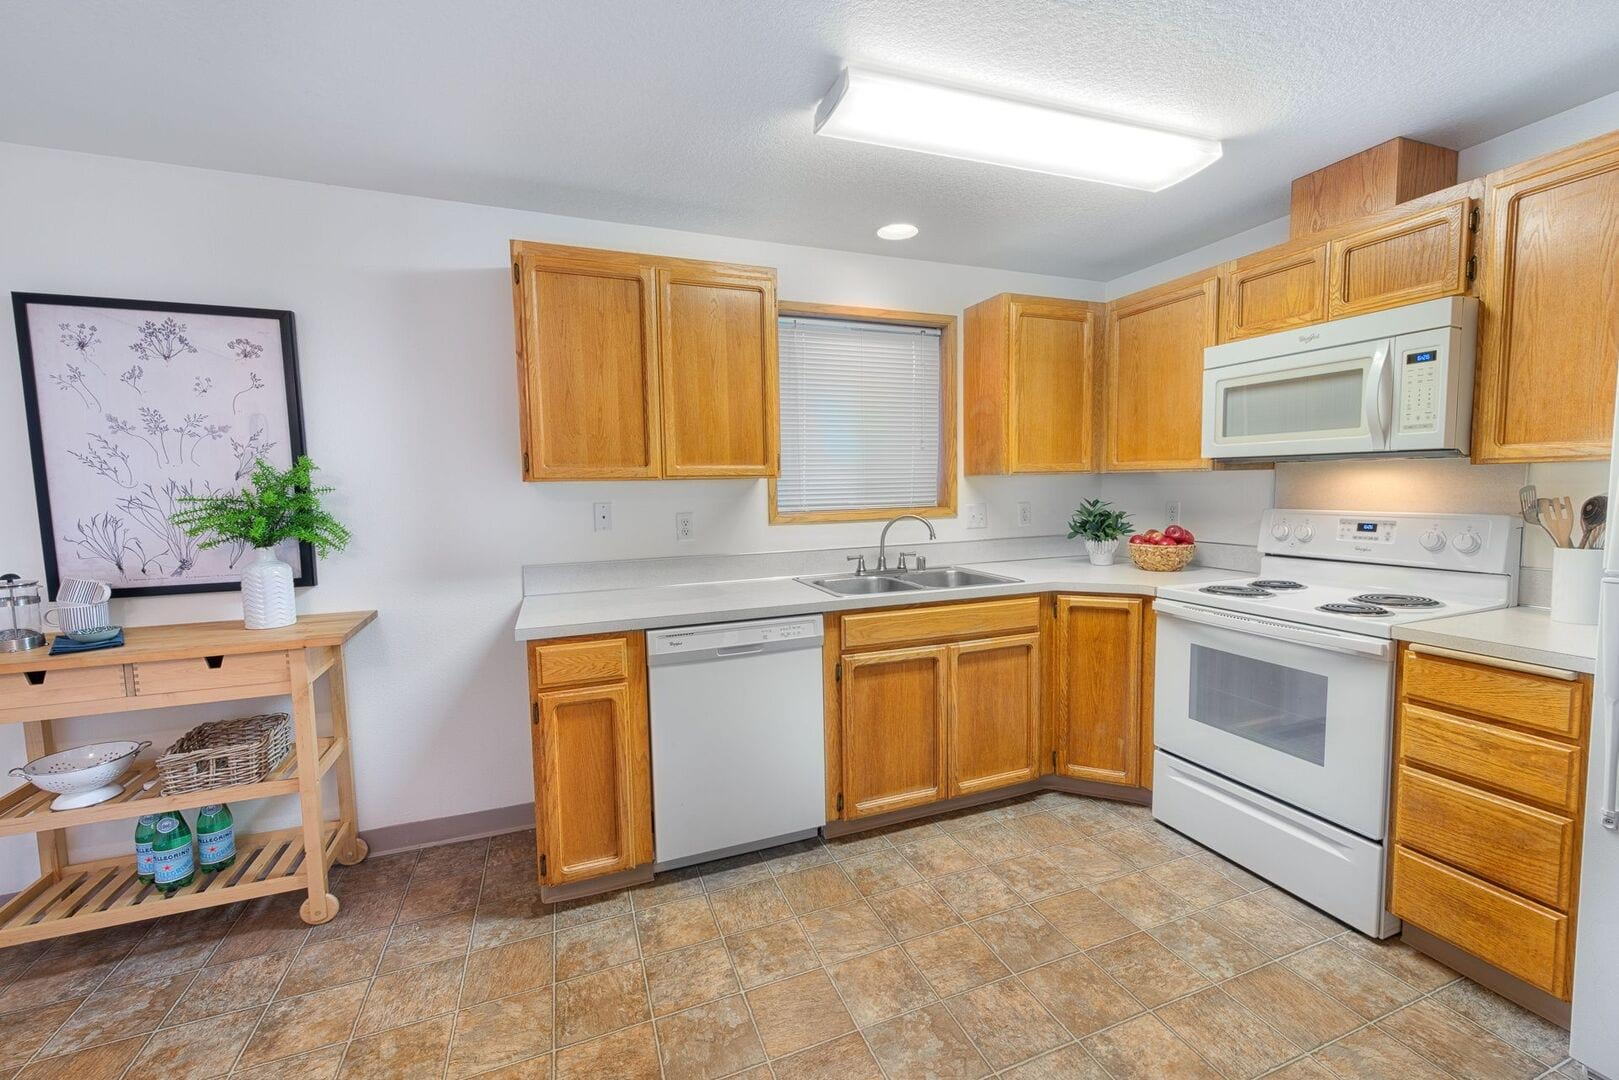 Apartments for Rent in Vancouver, WA   Summerfield - Home